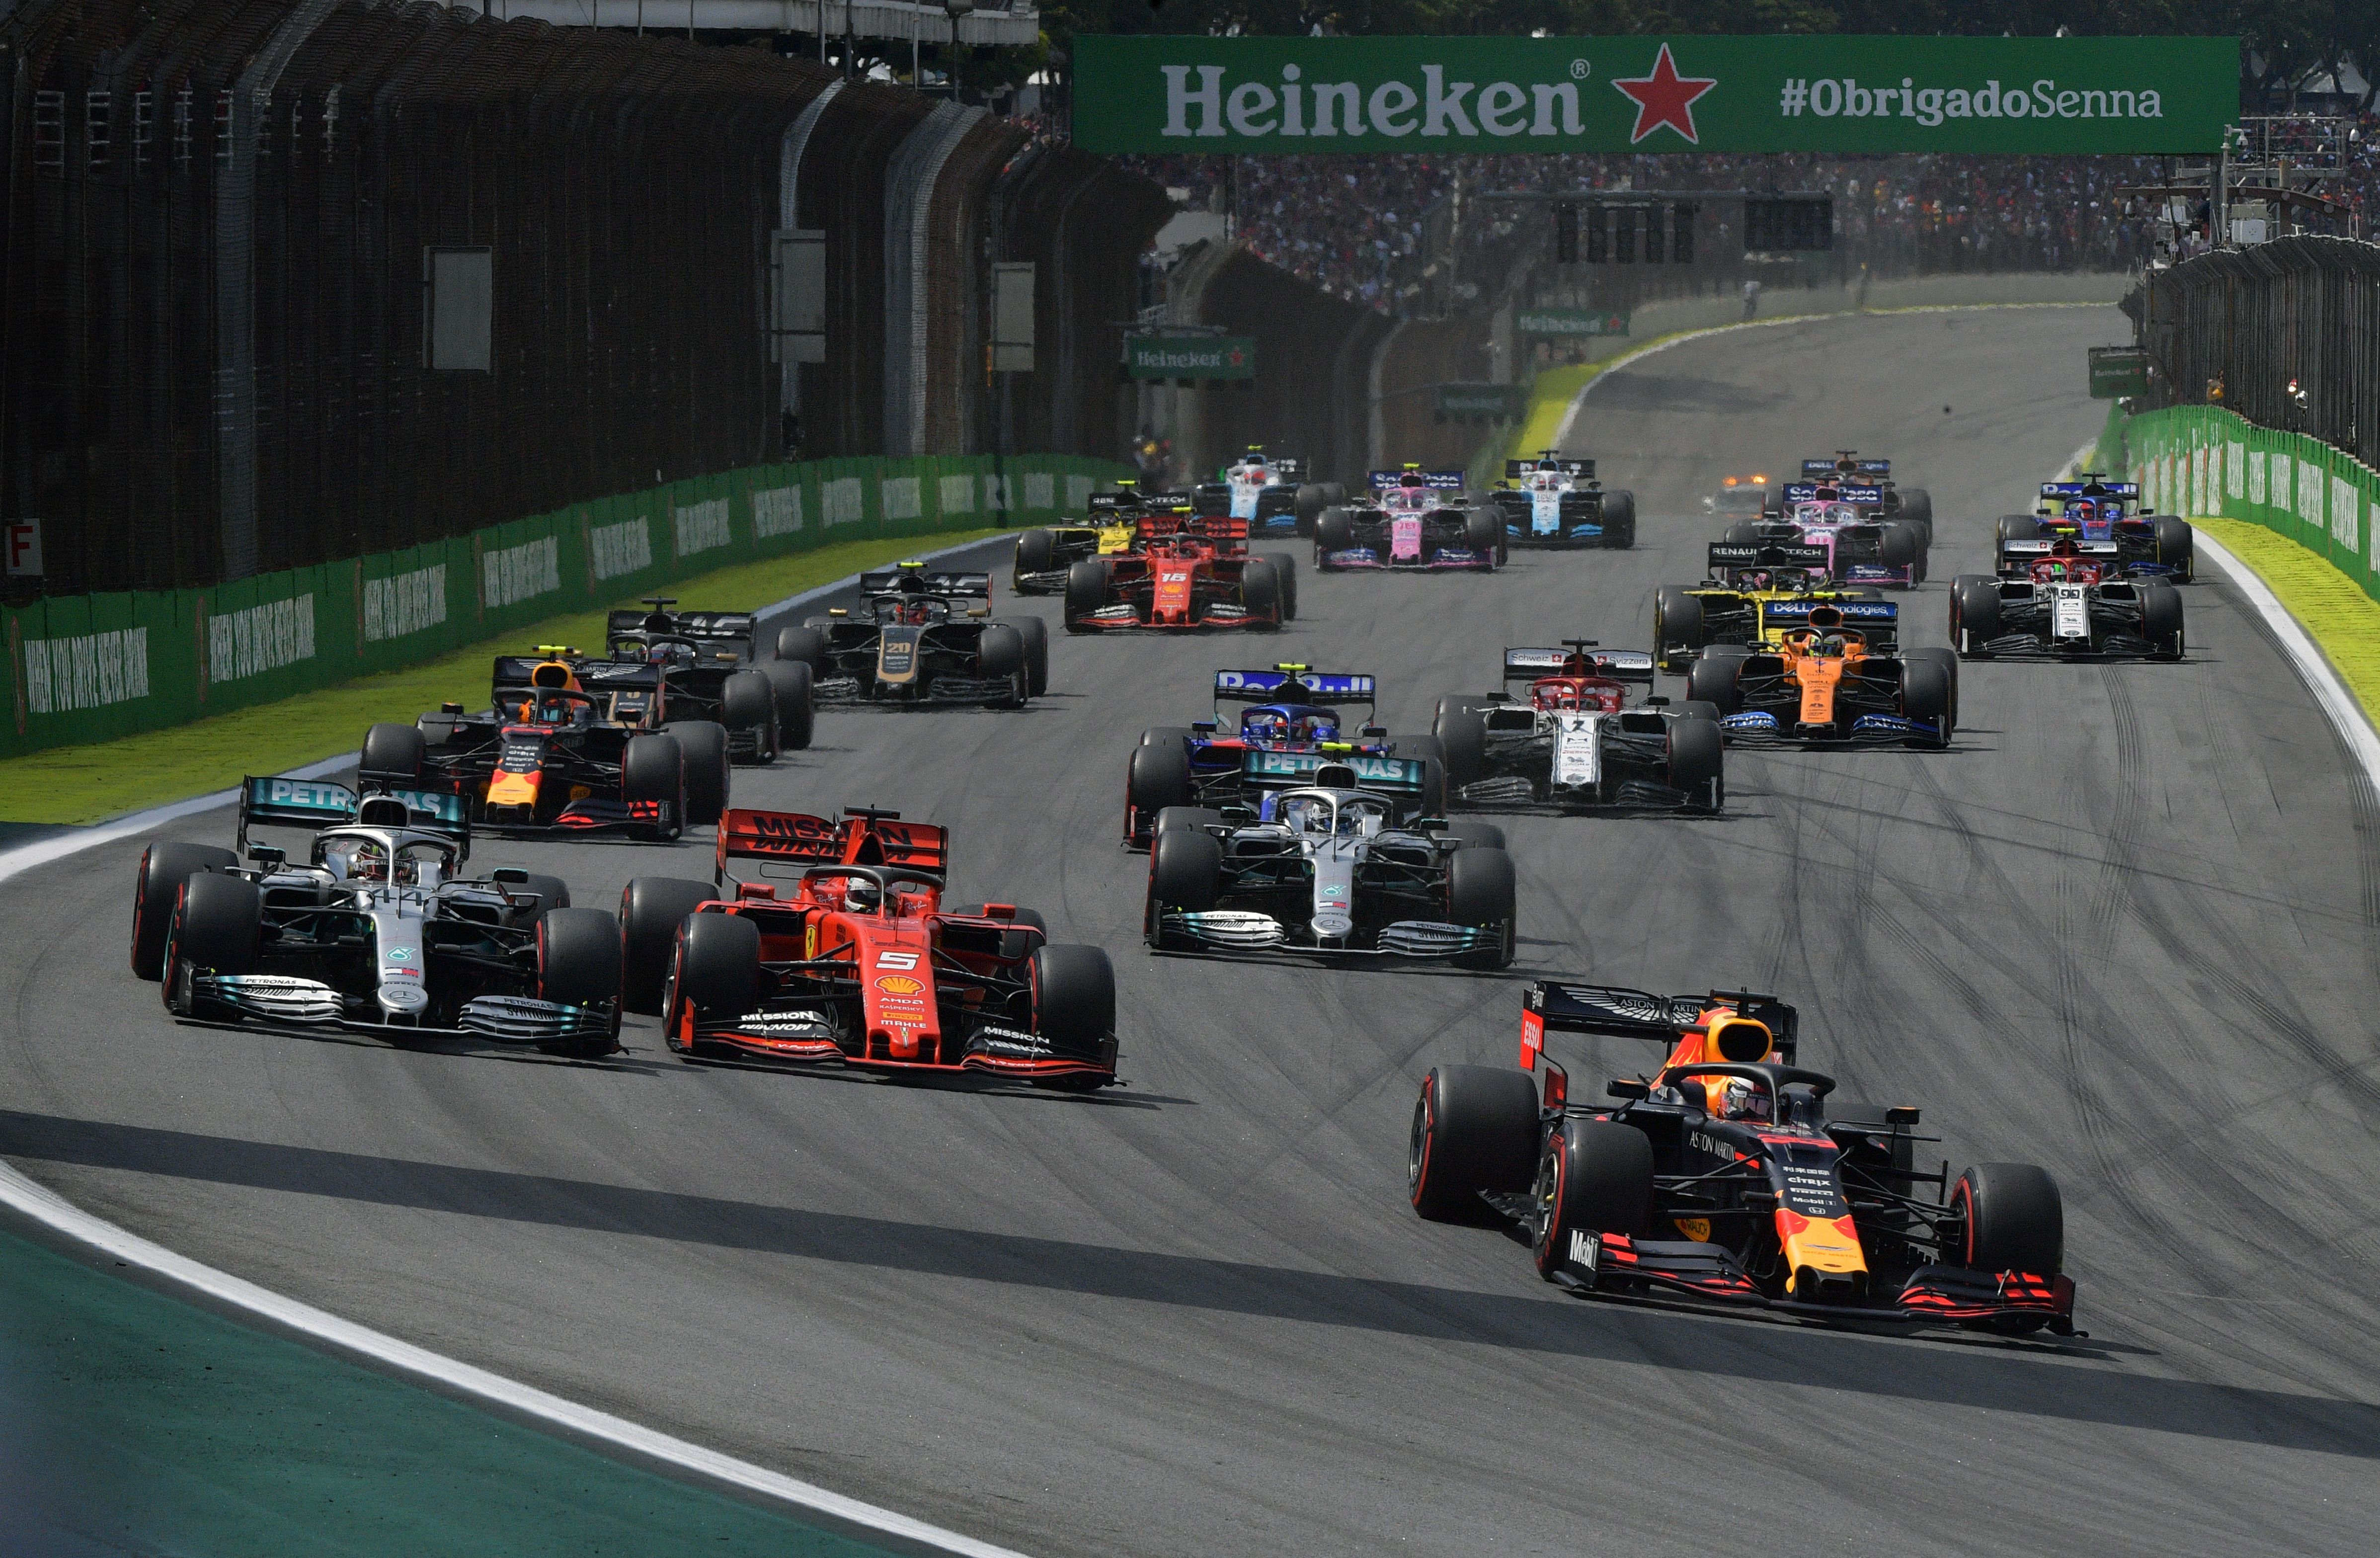 F1 Race Promoters In Brazil Mexico May Sue Over Canceled Races